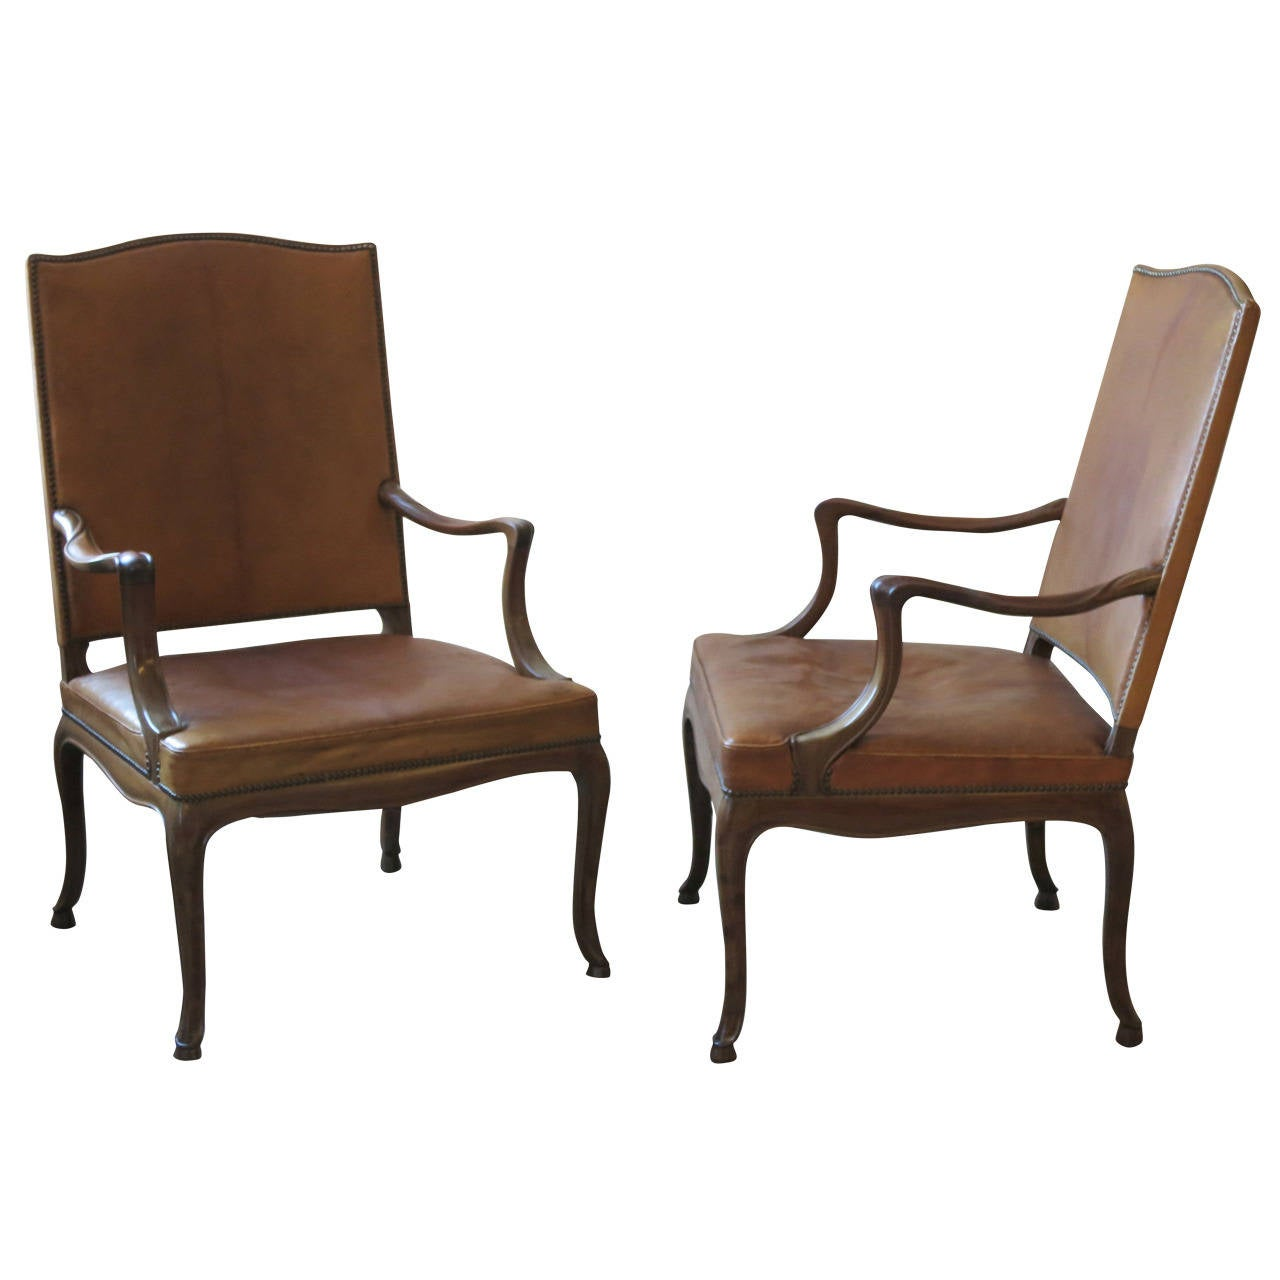 Frits henningsen four large s armchairs in danish